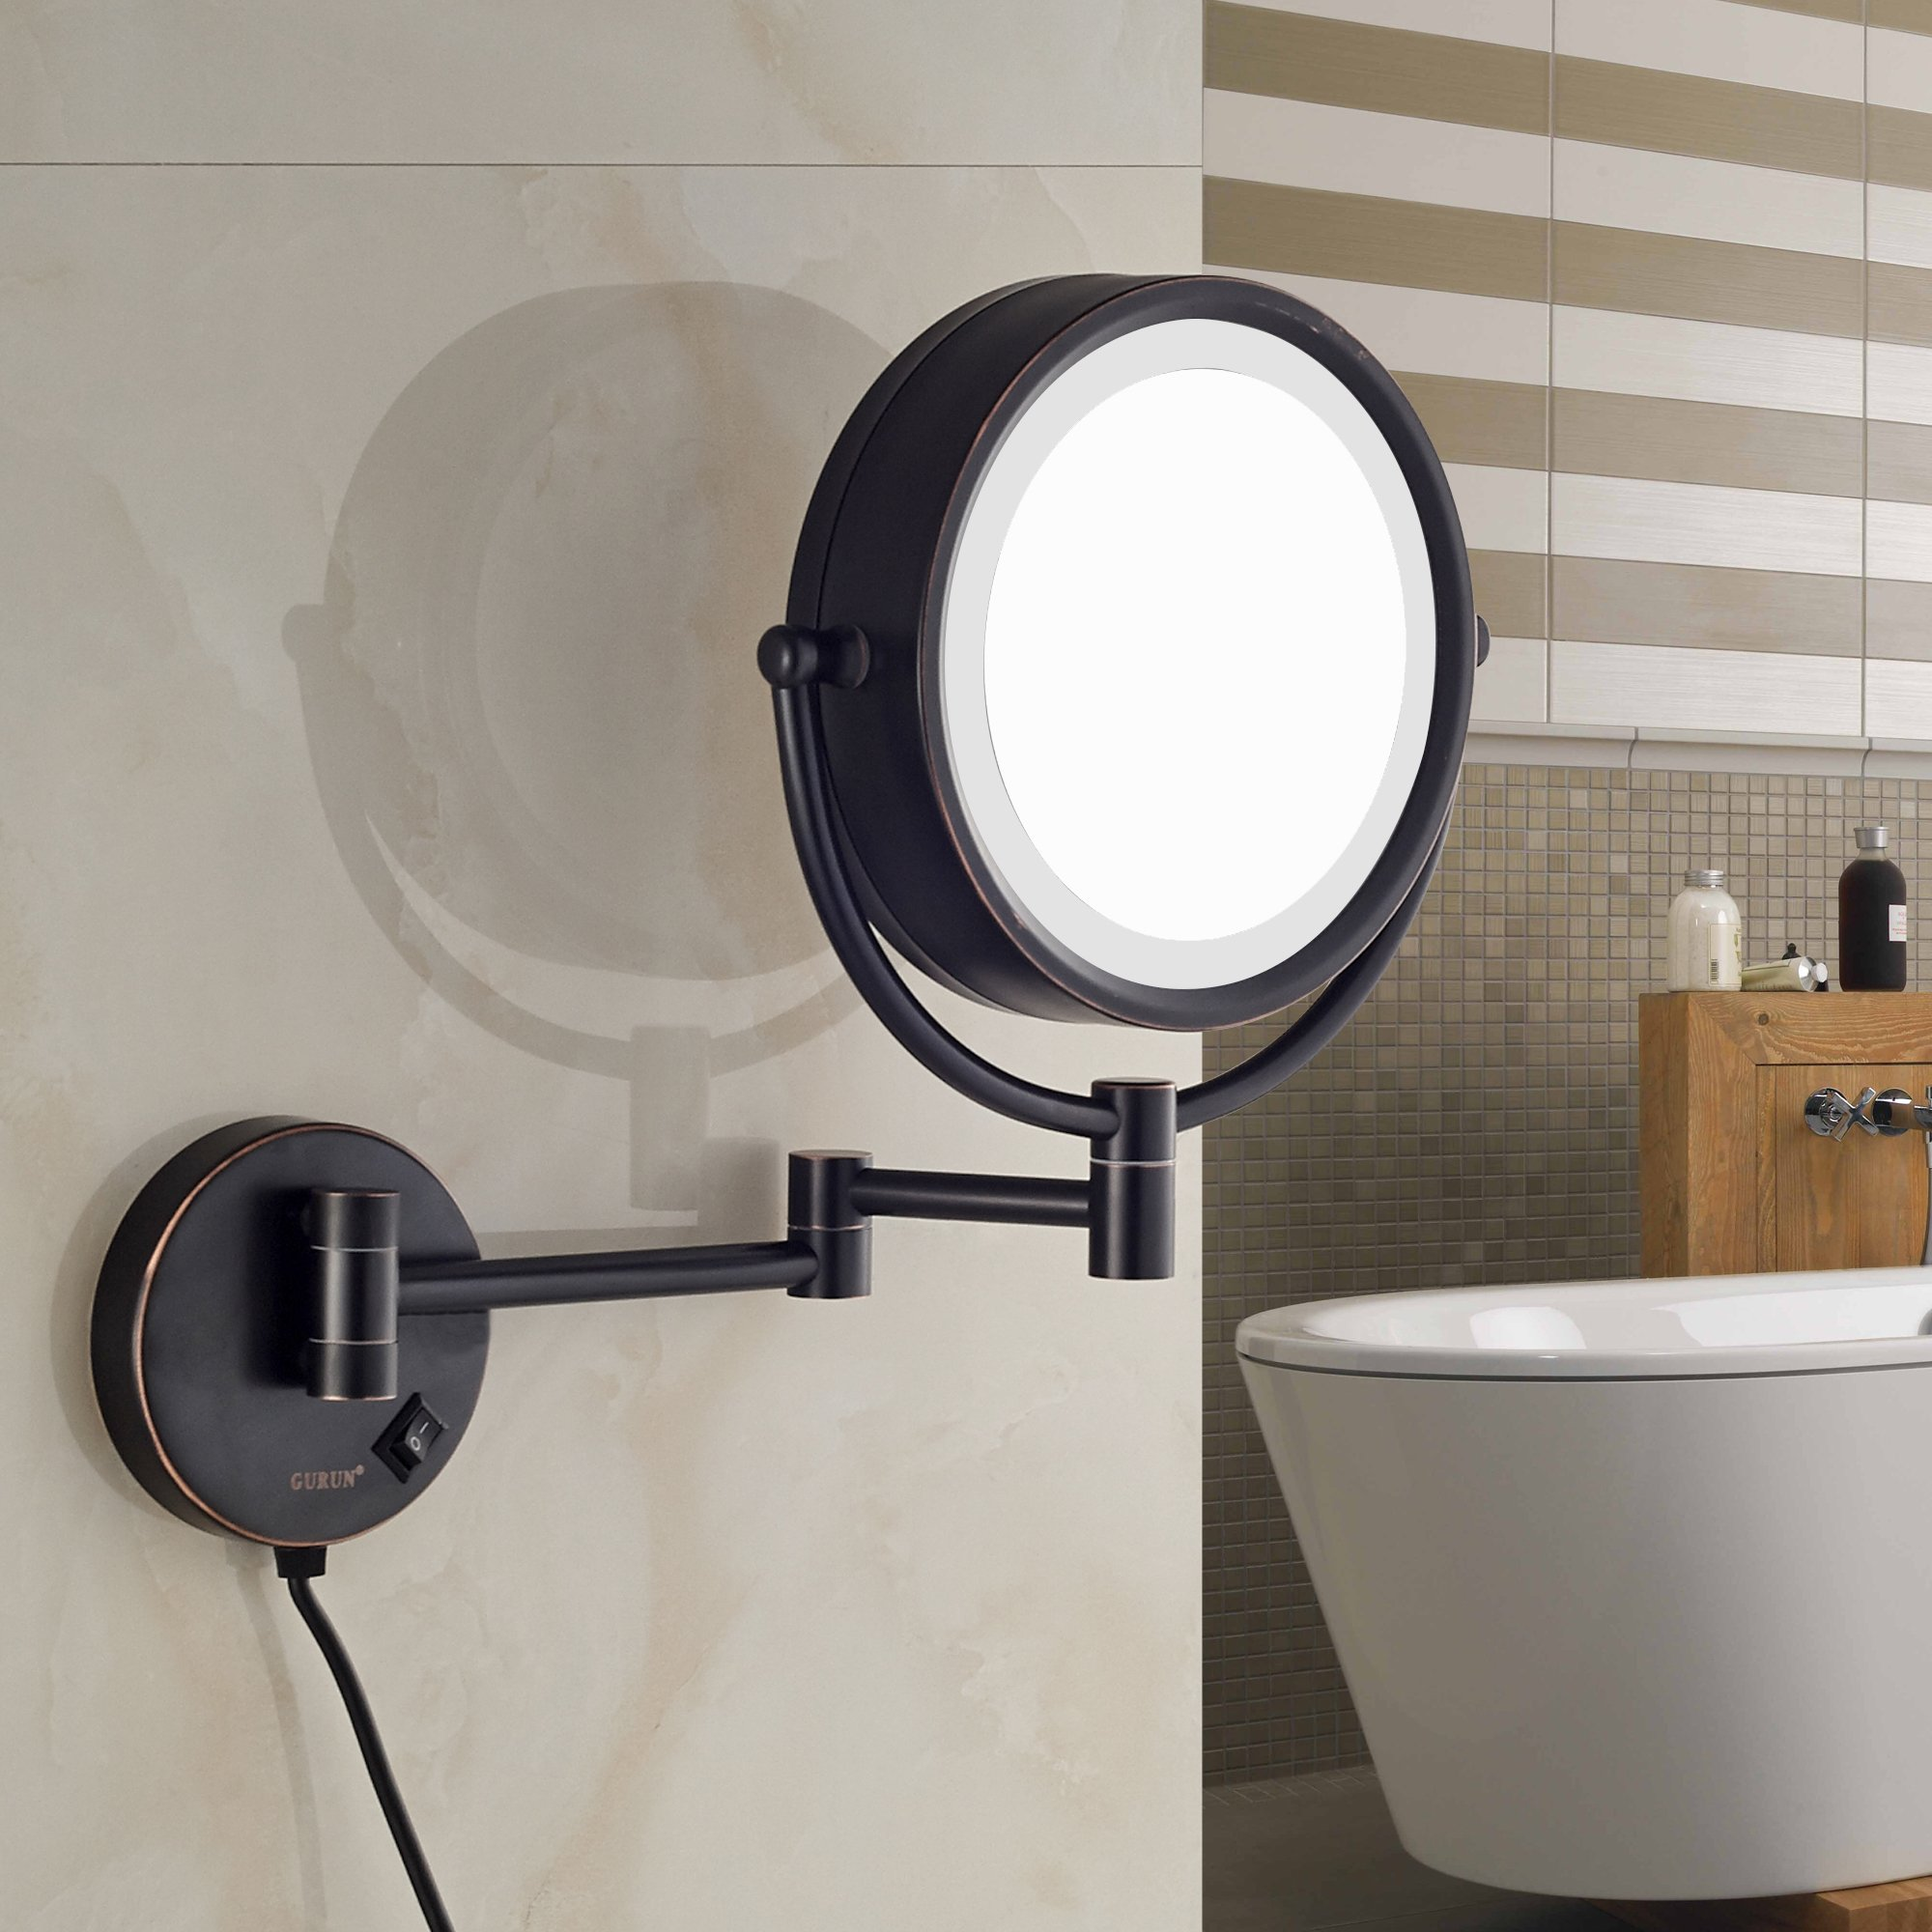 GURUN LED Lighted Wall Mount Makeup Mirror with 10x Magnification,Oil-Rubbed Bronze Finish, 8.5 Inch, BRASS,M1809DO(8.5in,10x) by GURUN (Image #5)